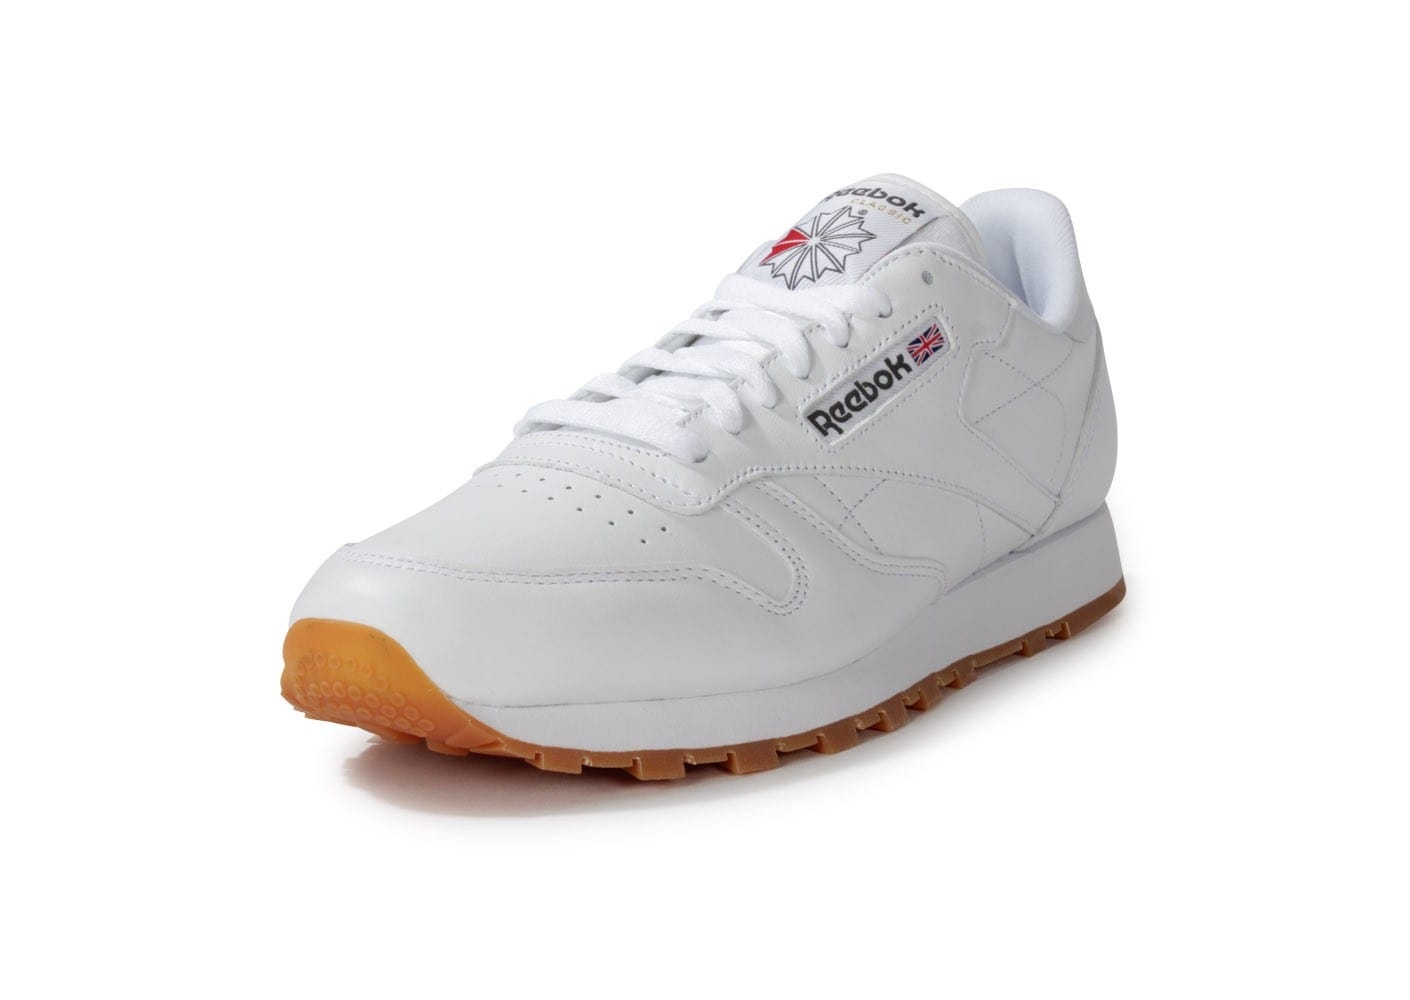 6d39e131689be Reebok Classic Leather Blanche Gum - Chaussures Baskets homme ...